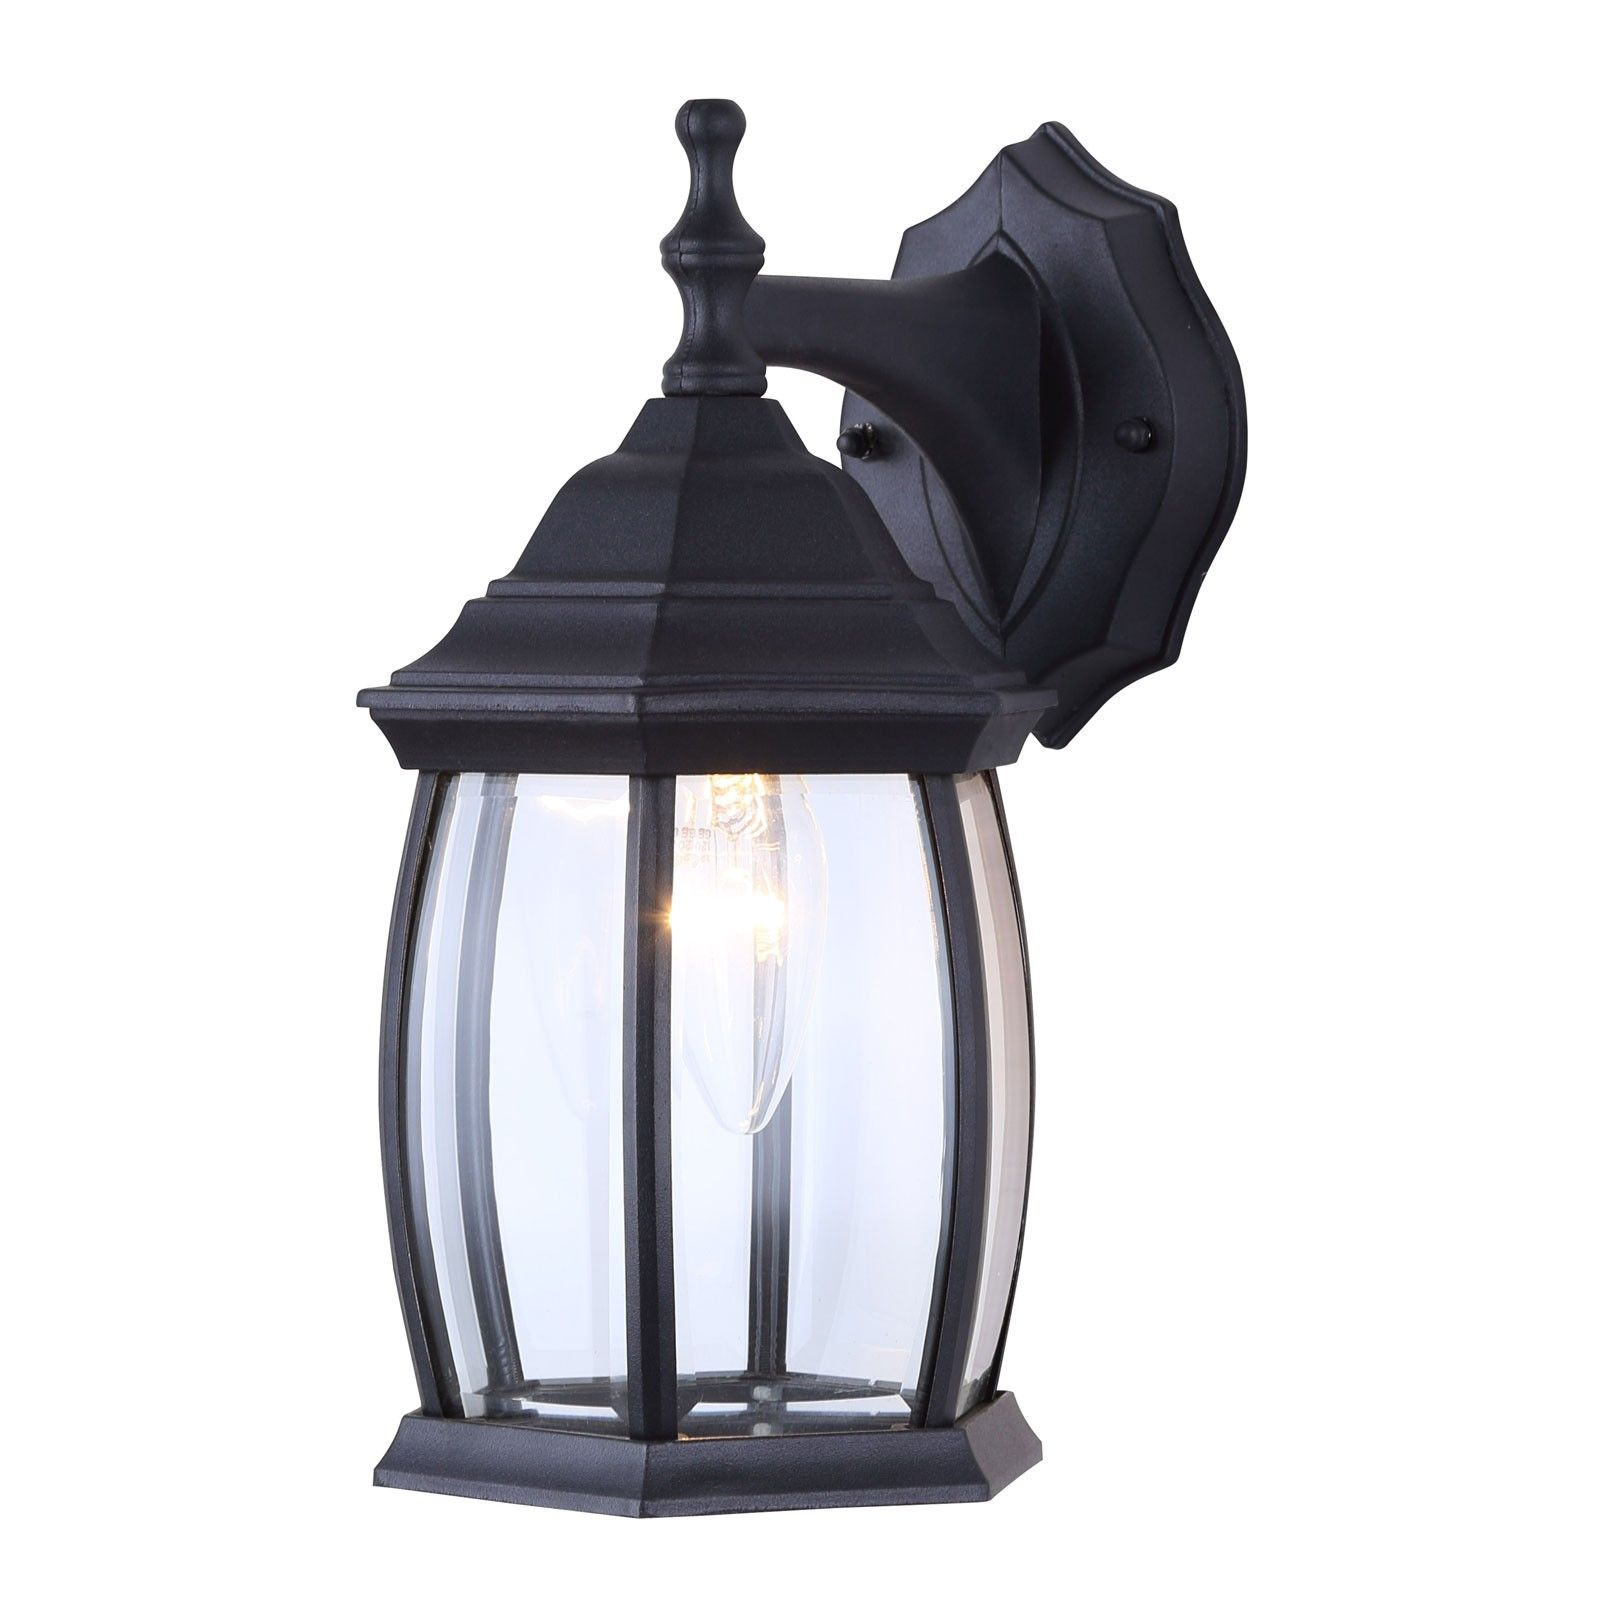 outdoor glass light lighting finish item wall charlemagne pewter wide sconce troy aged image shown magnifying in cfm inch